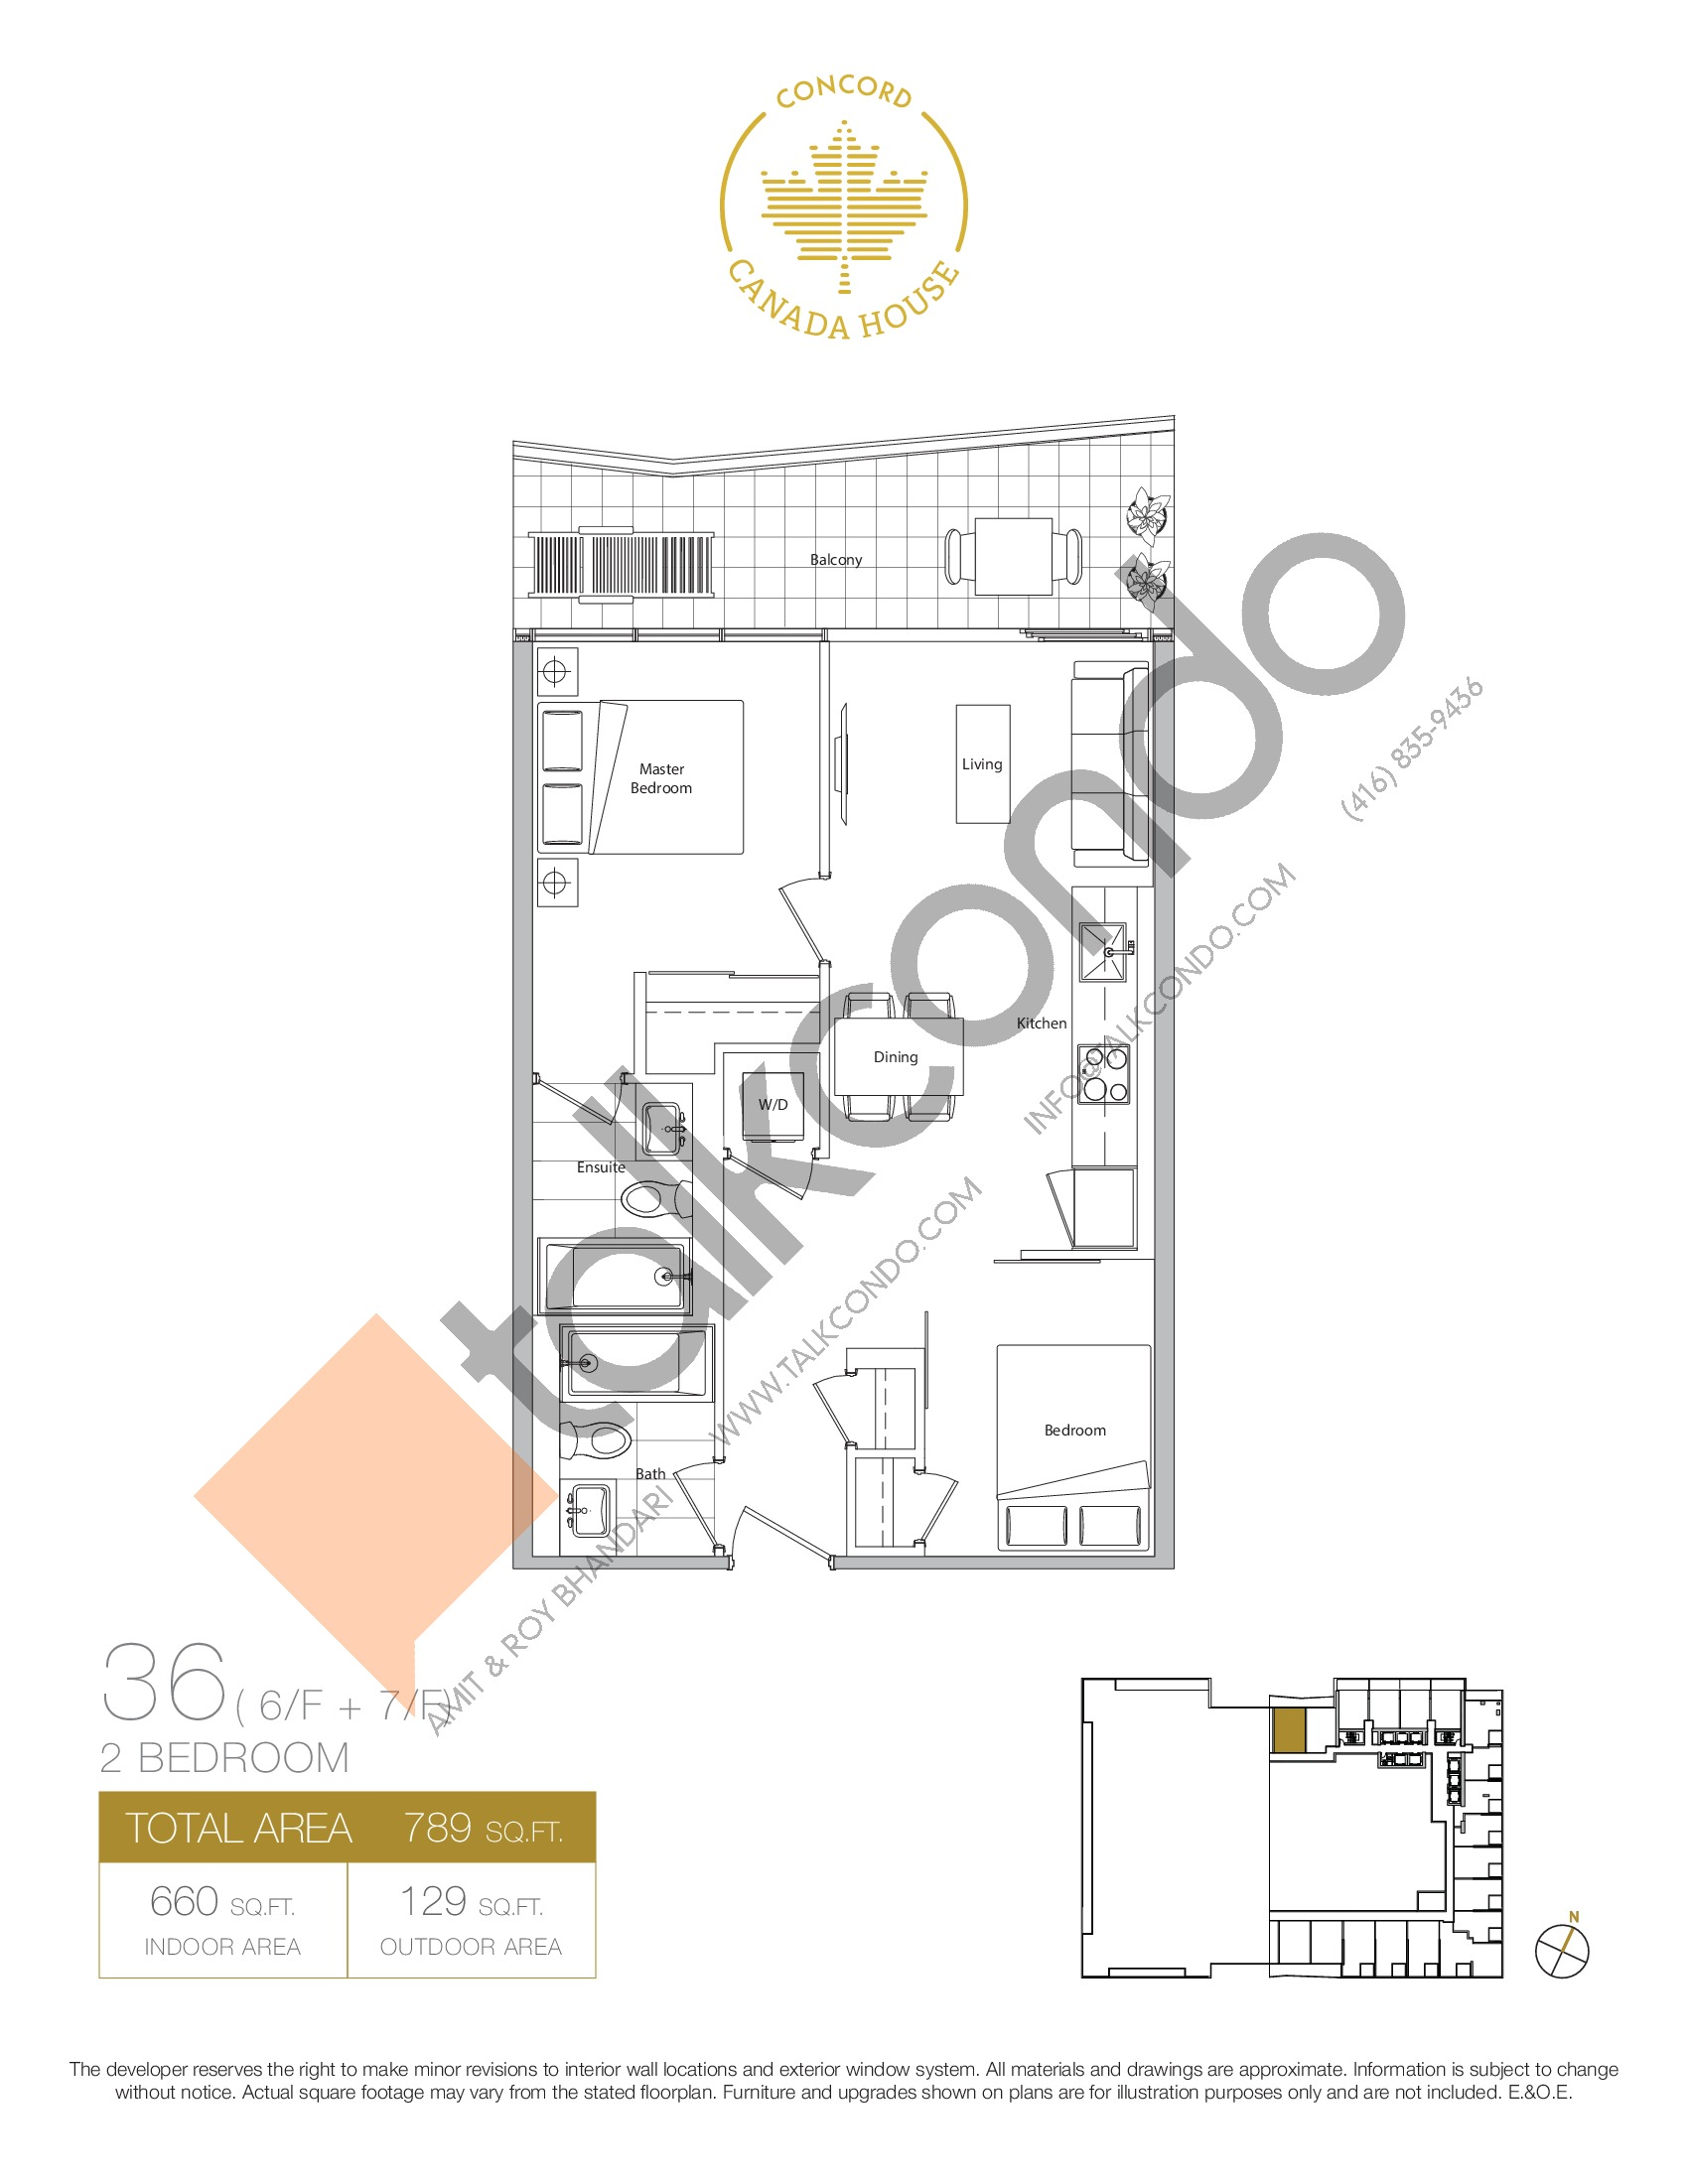 36 - East Tower Floor Plan at Concord Canada House Condos - 660 sq.ft